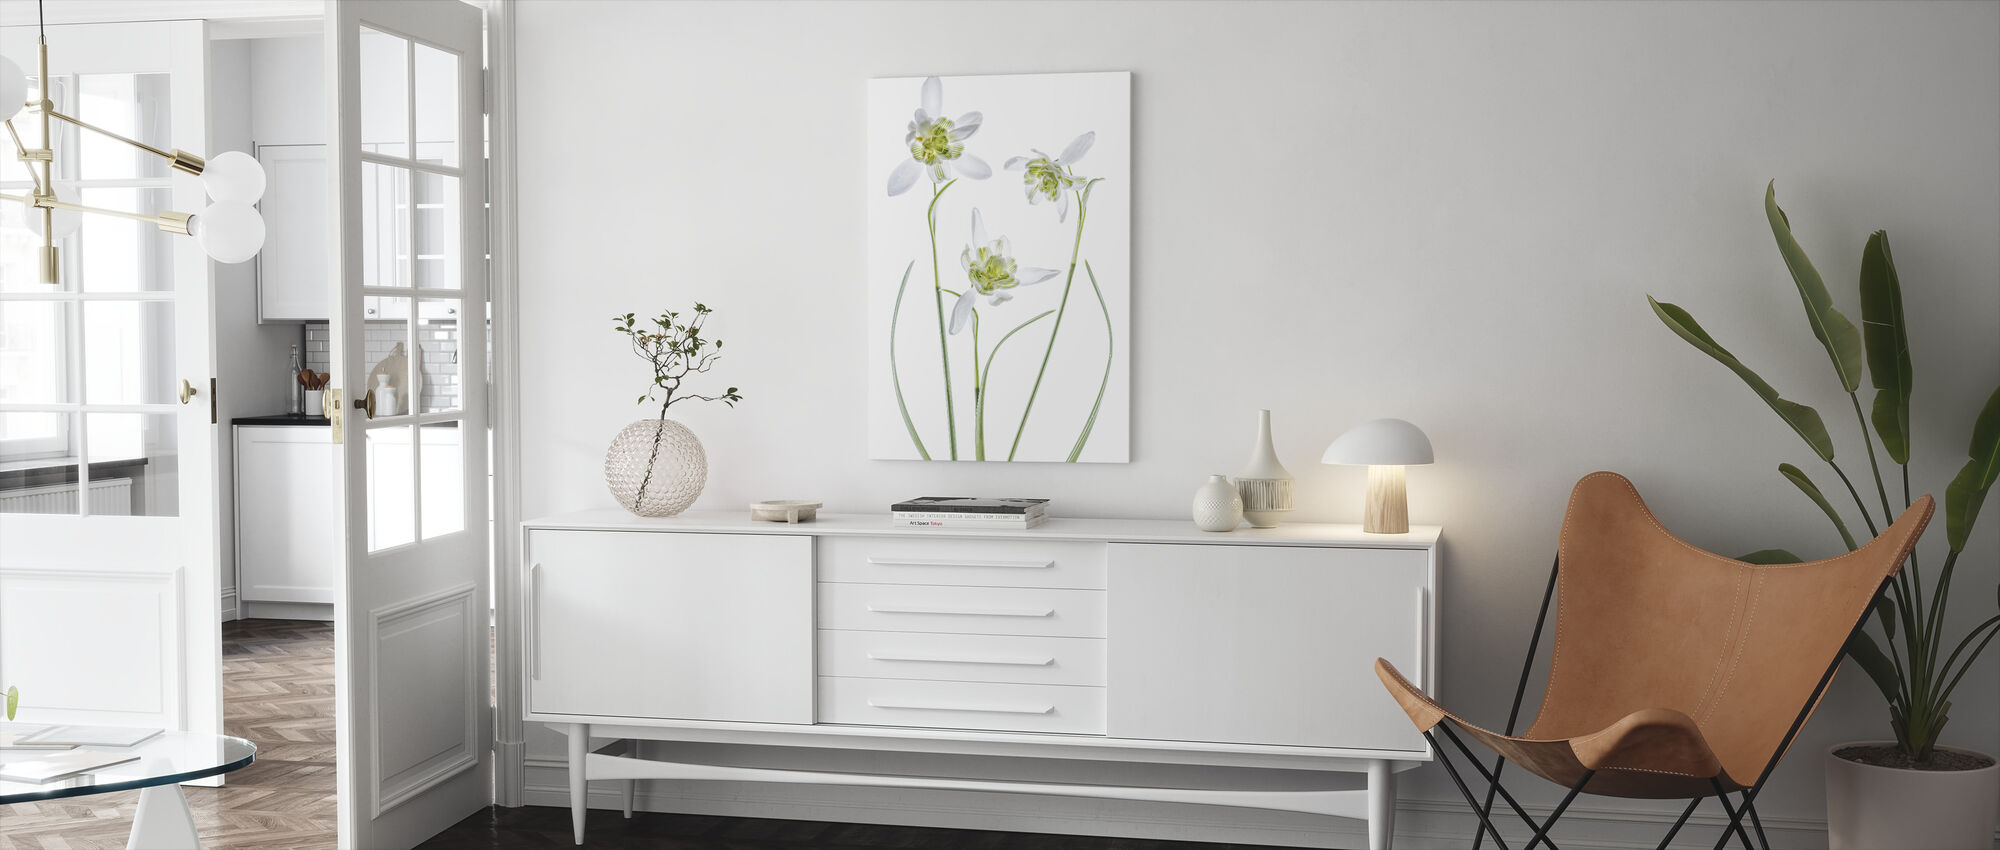 Galanthus Flore Pleno - Canvas print - Living Room